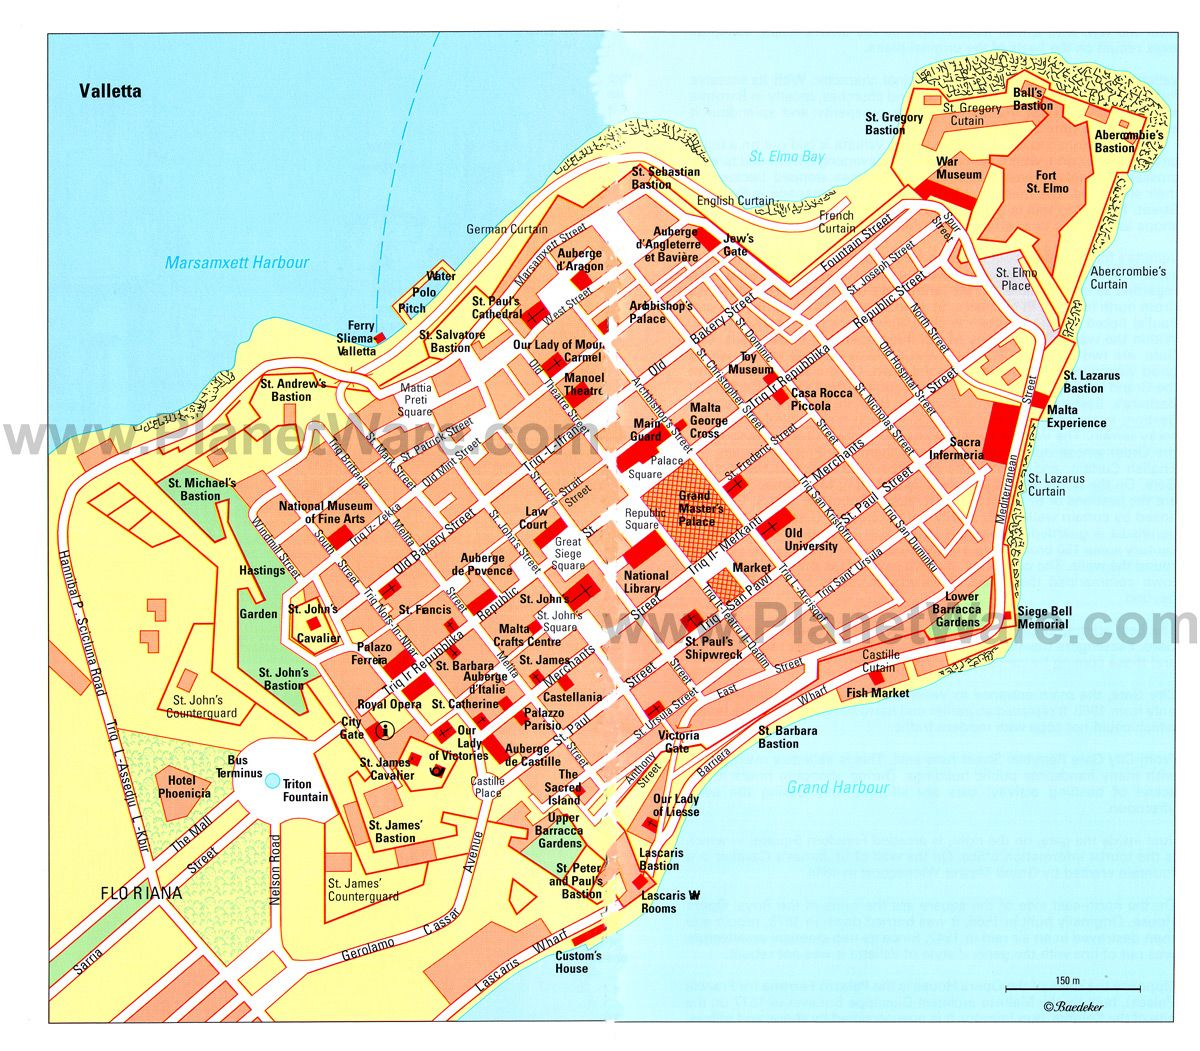 12 Top Rated Tourist Attractions In Valletta Planetware Valletta Tourist Attraction Tourist